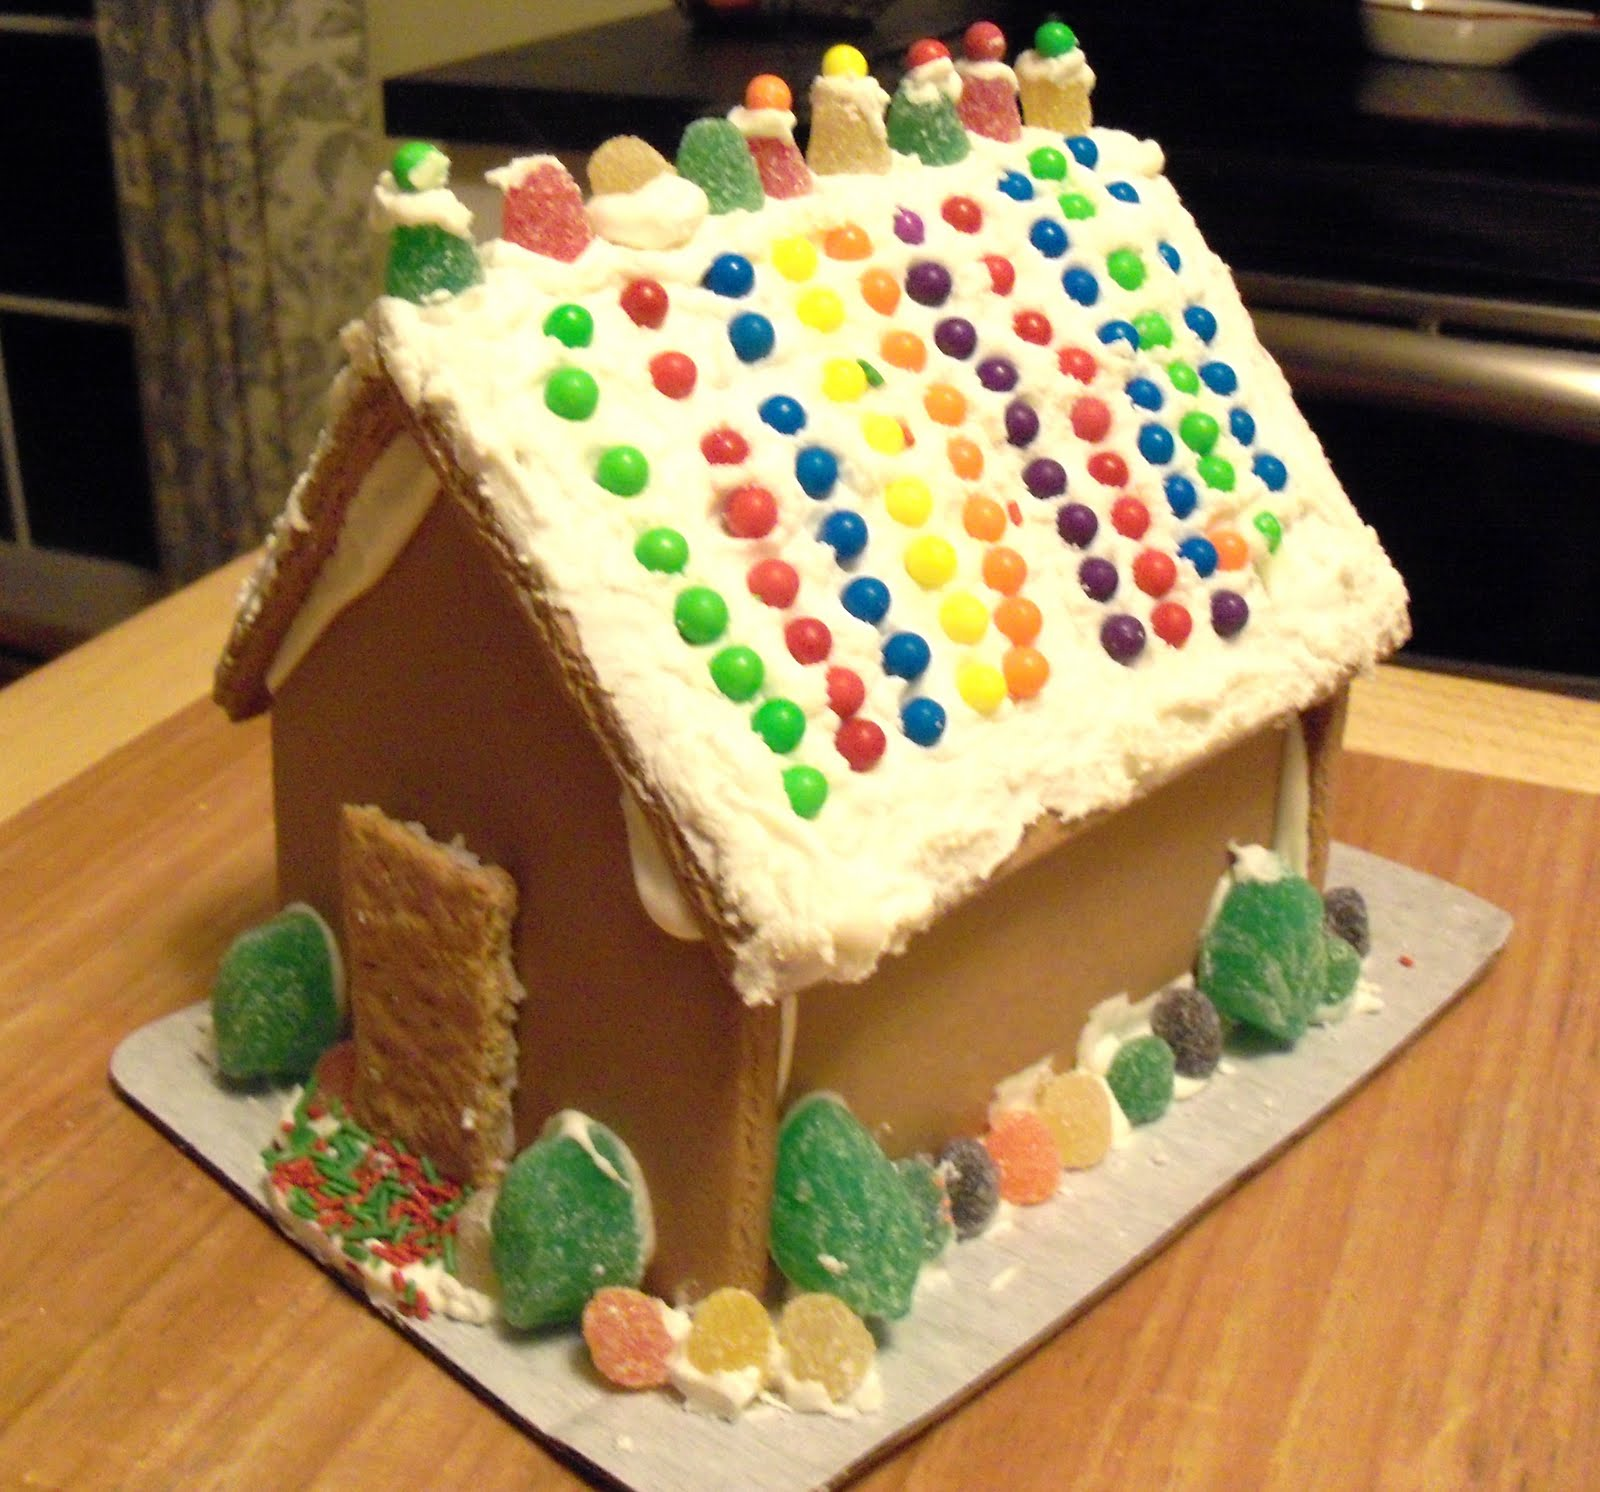 Nittany Inspirations: Deck the Halls - Gingerbread House